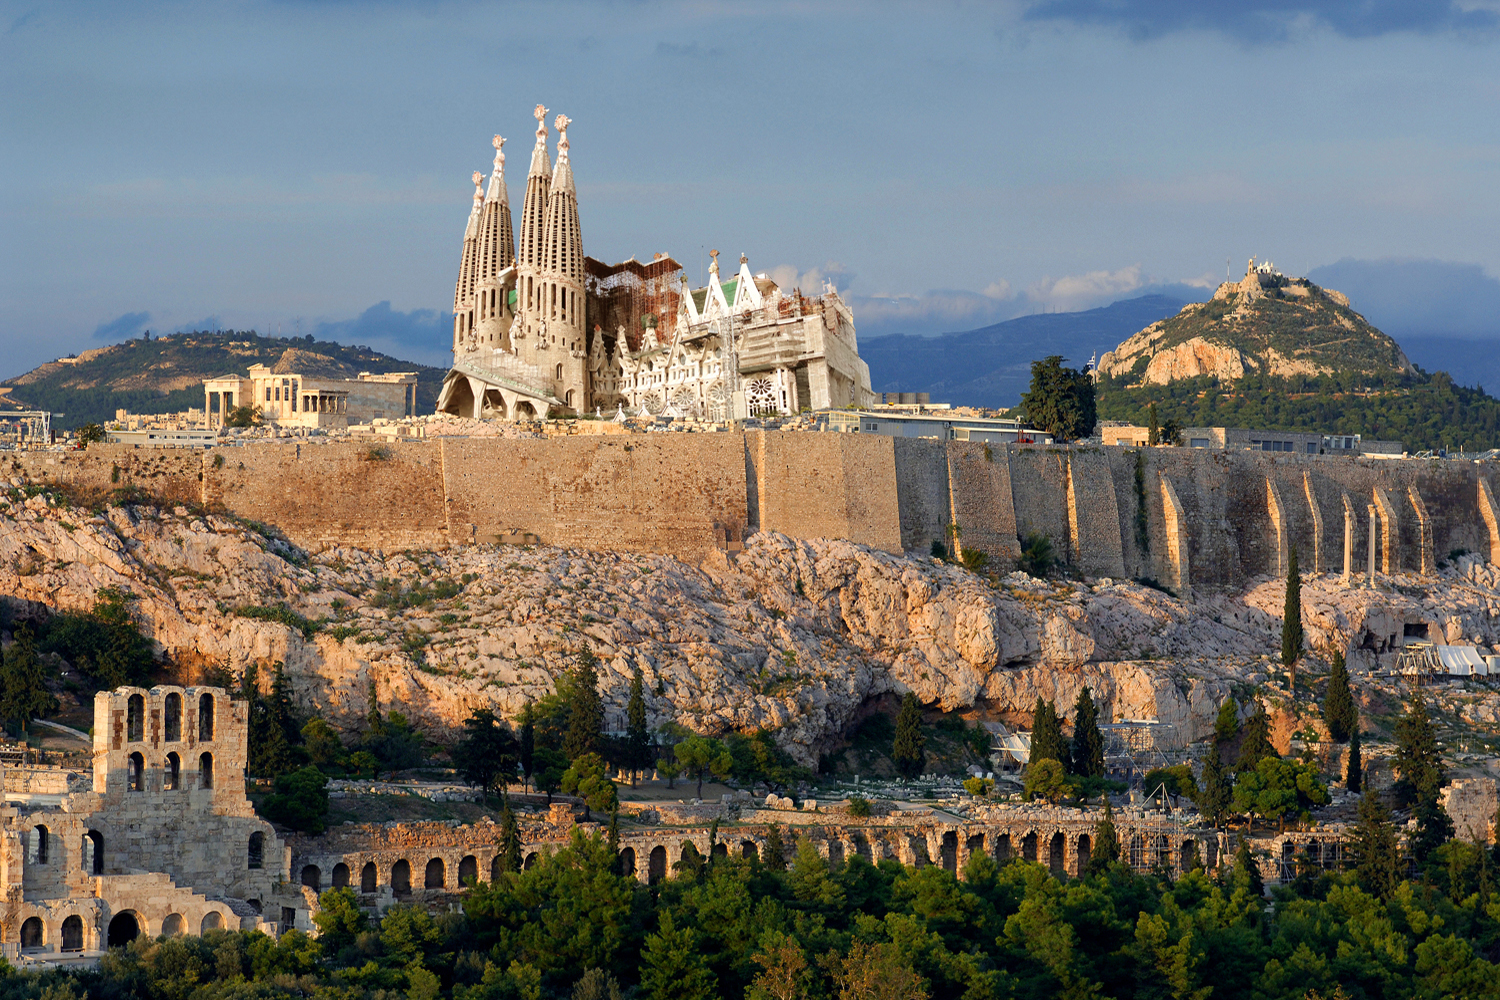 What if the Sagrada Familia were in Athens